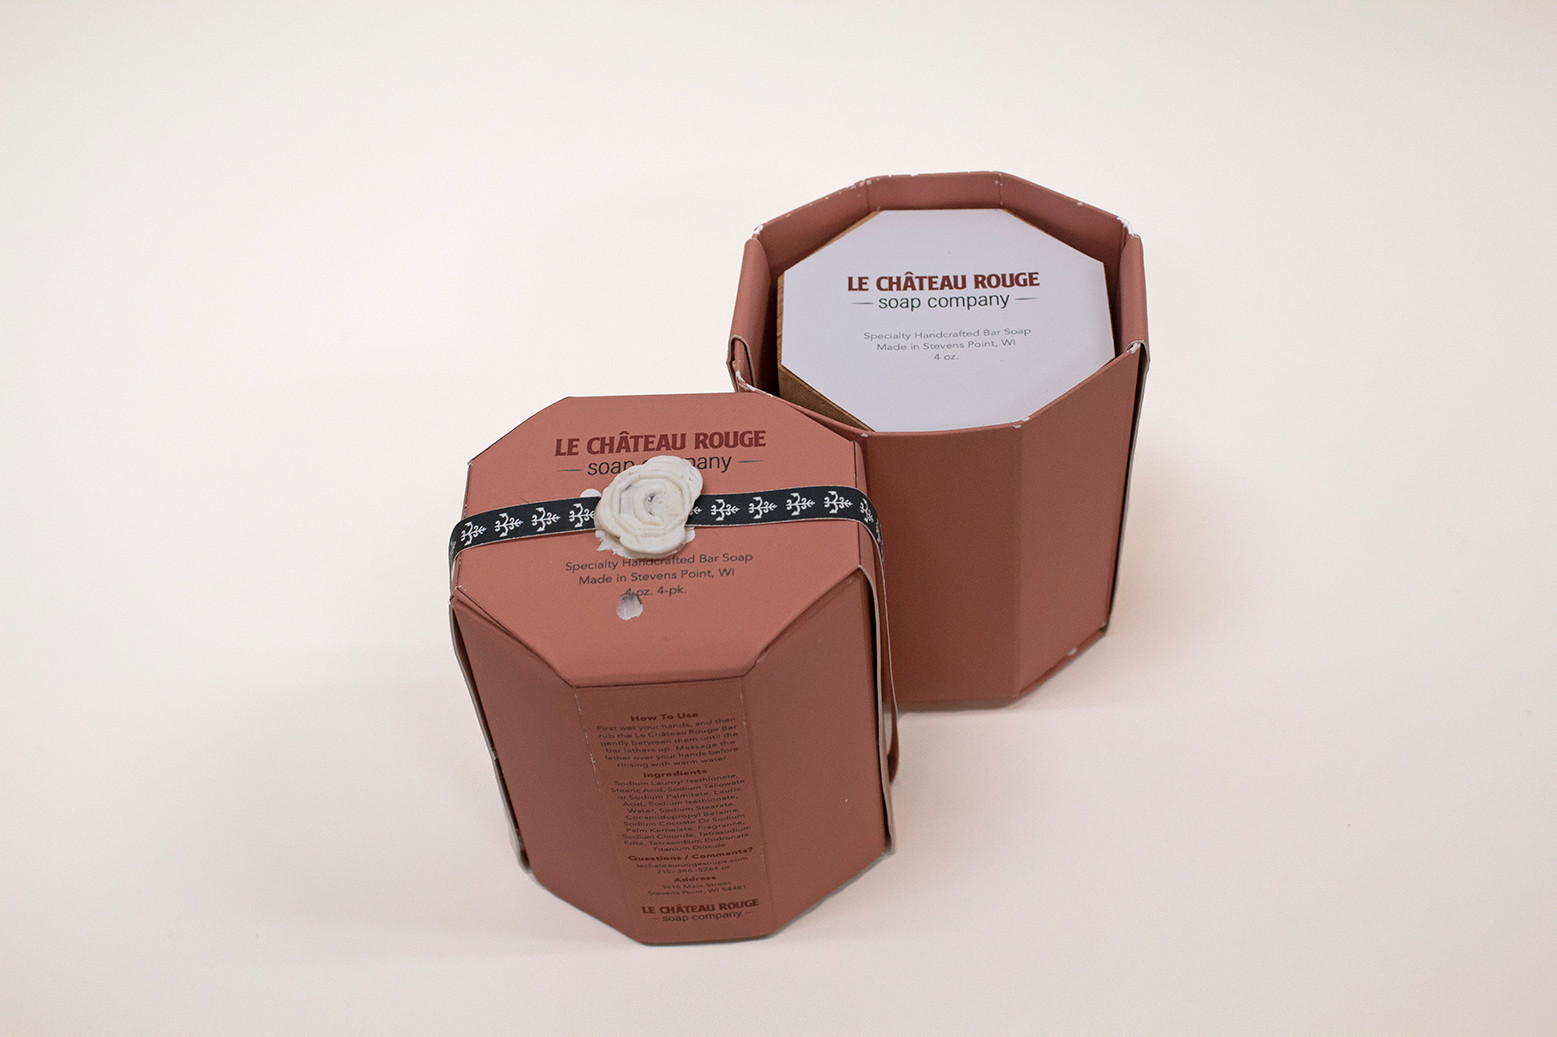 Le Chateau Rouge Packaging